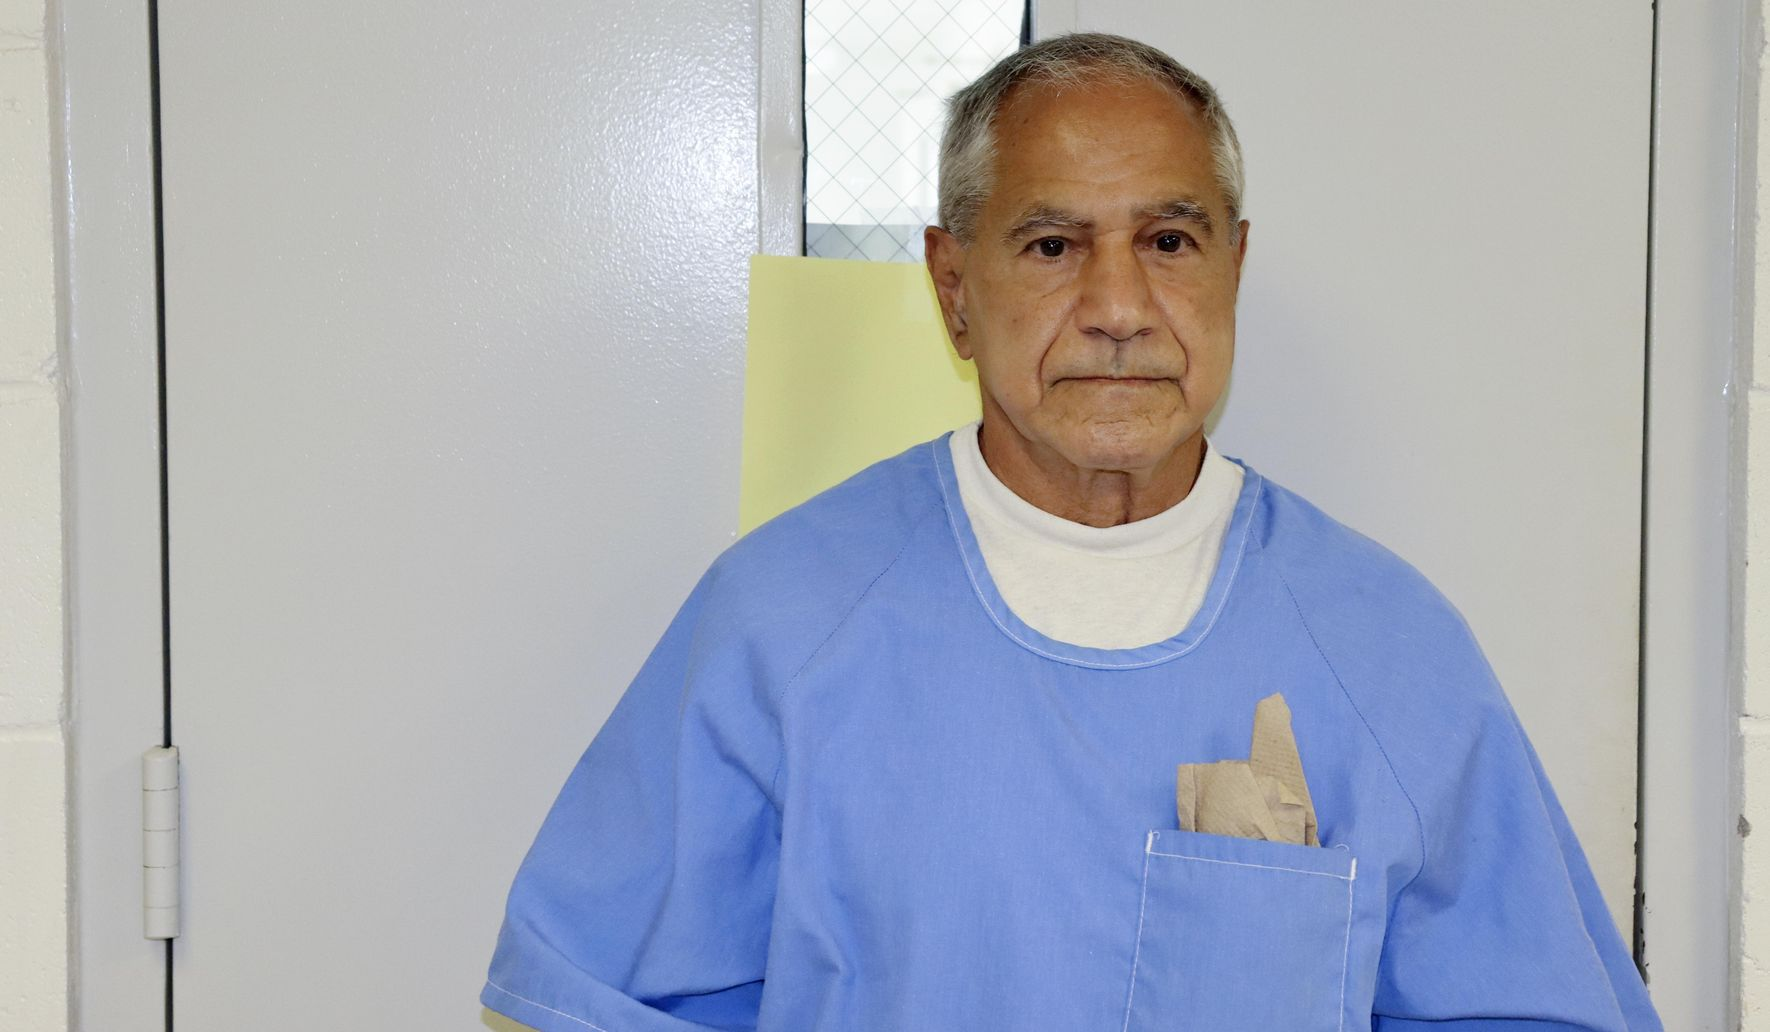 Robert F. Kennedy's Assassin Sirhan Sirhan Granted Parole After 52 Years in Prison